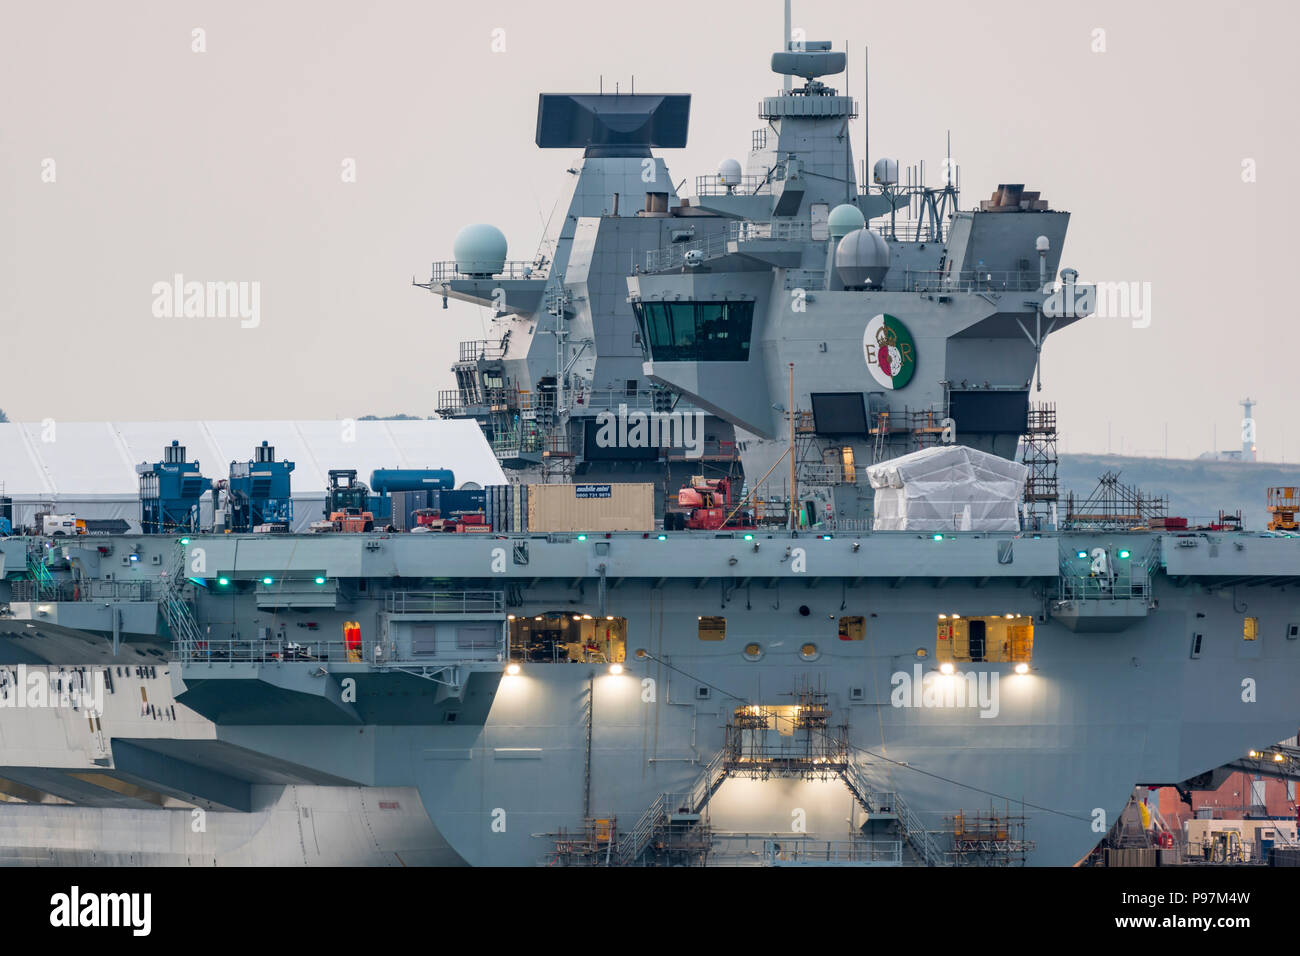 HMS Queen Elizabeth Aircraft Carrier, the Royal Navy's largest and newest warship, moored at dusk in the docks at Portsmouth, Hampshire, England, UK. - Stock Image